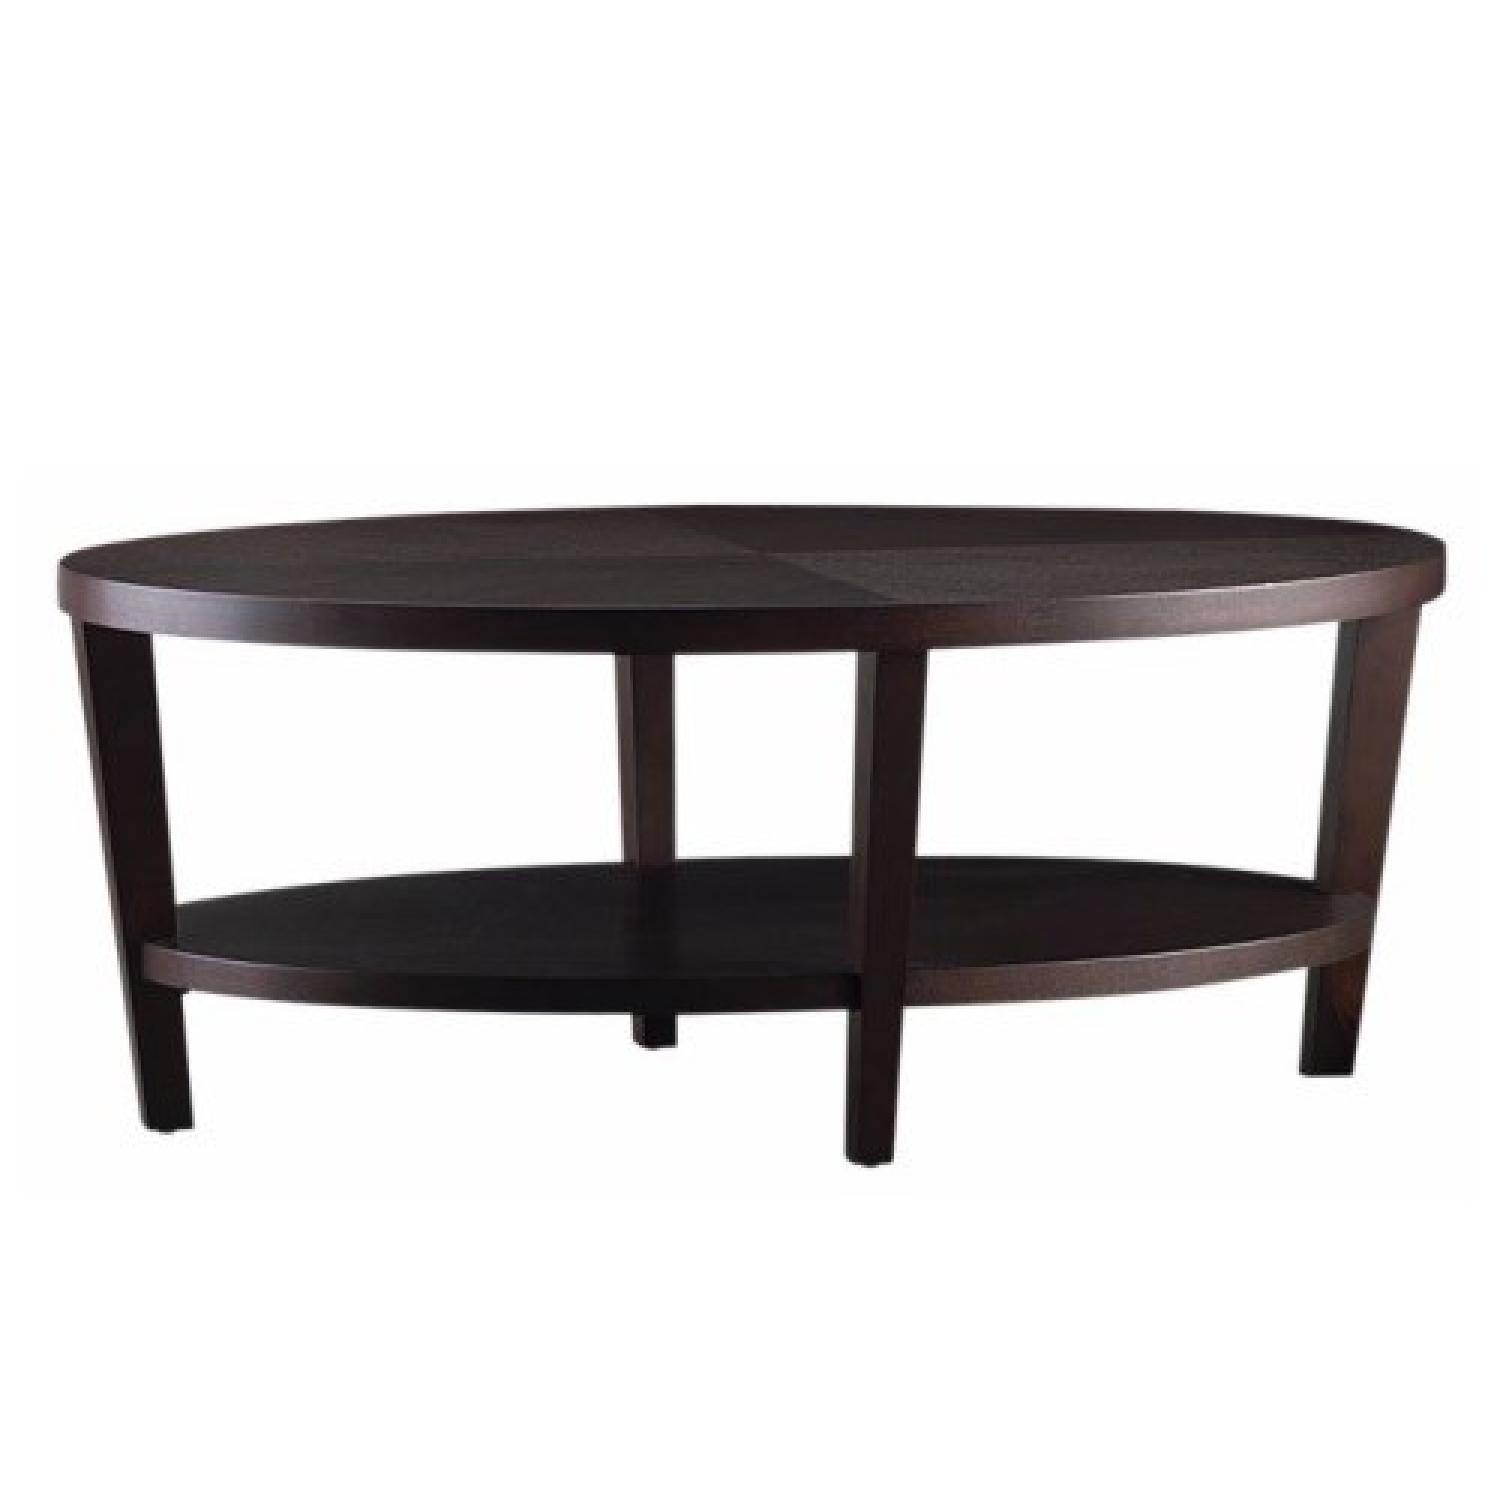 Crate & Barrel Vintage Art Deco Coffee Table